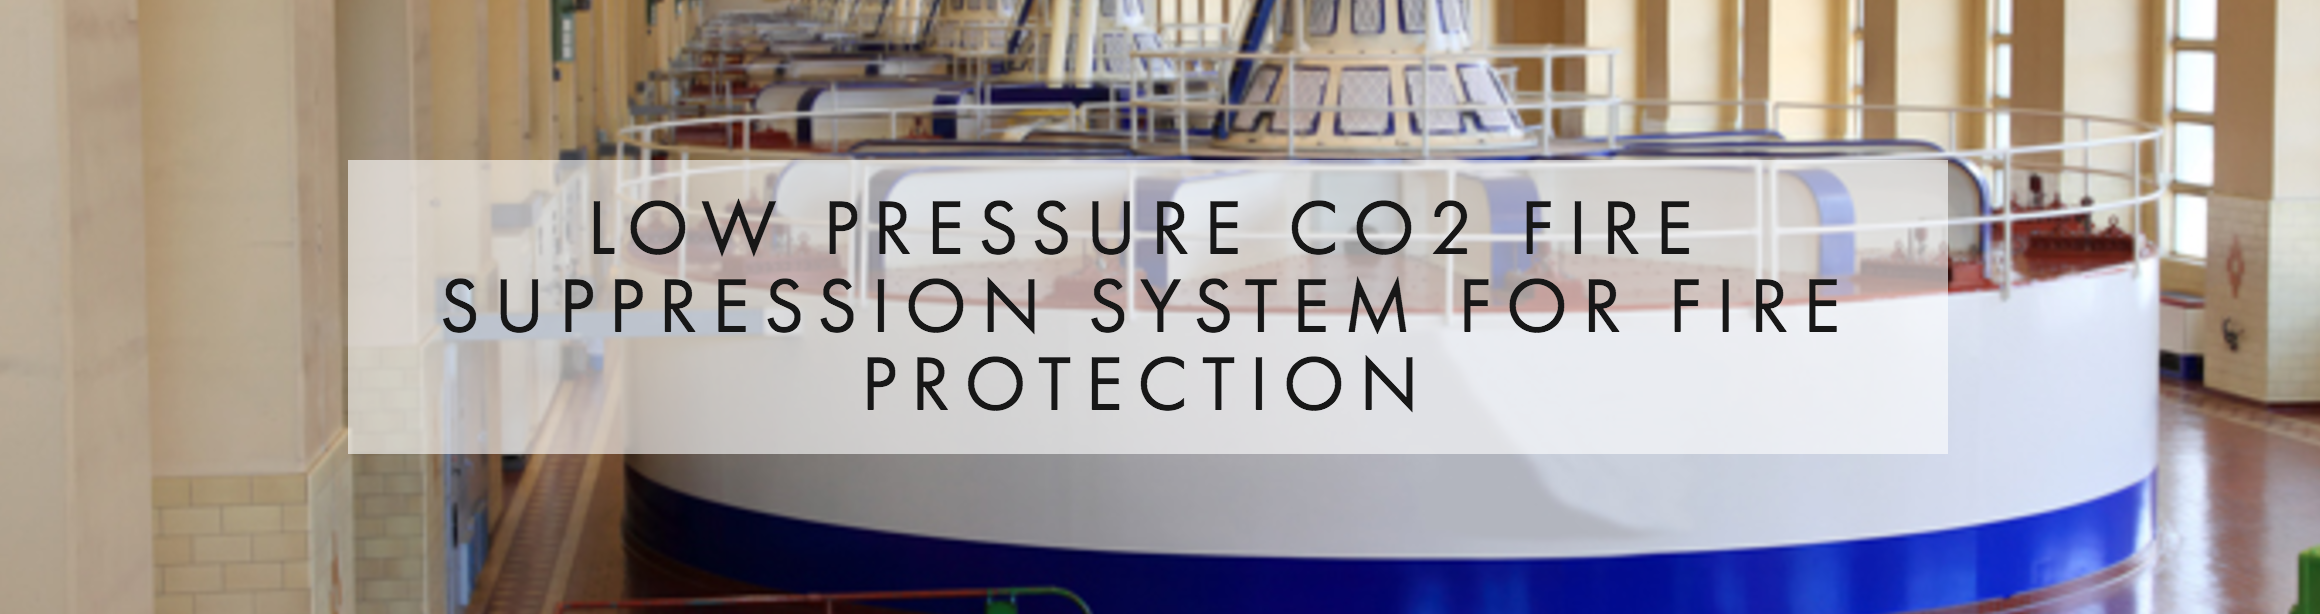 LOW PRESSURE CO2